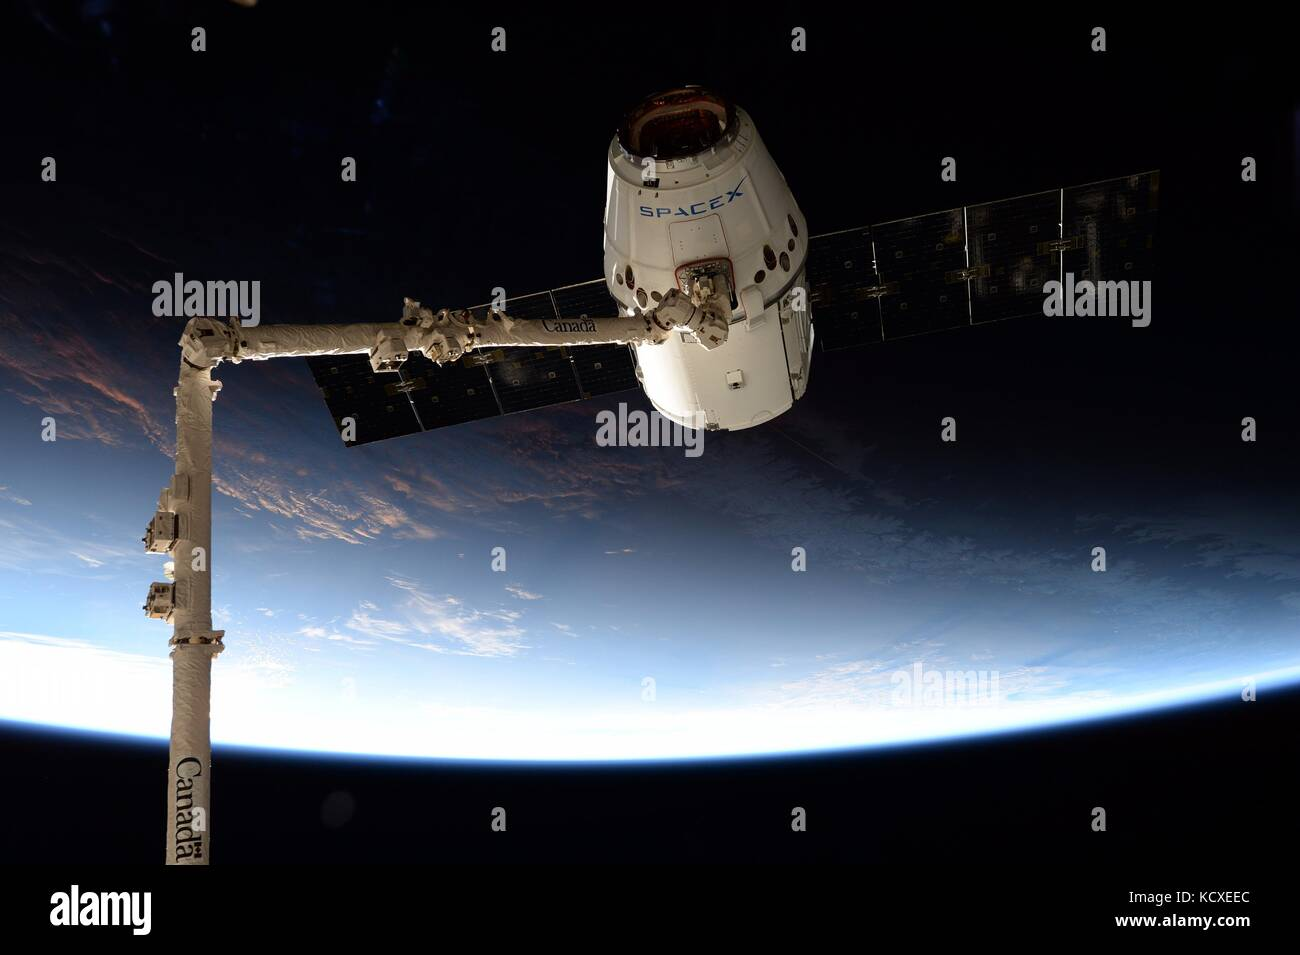 The commercial supply ship SpaceX dragon is grabbed by the CanadaArm2 robotic arm for docking to the International - Stock Image